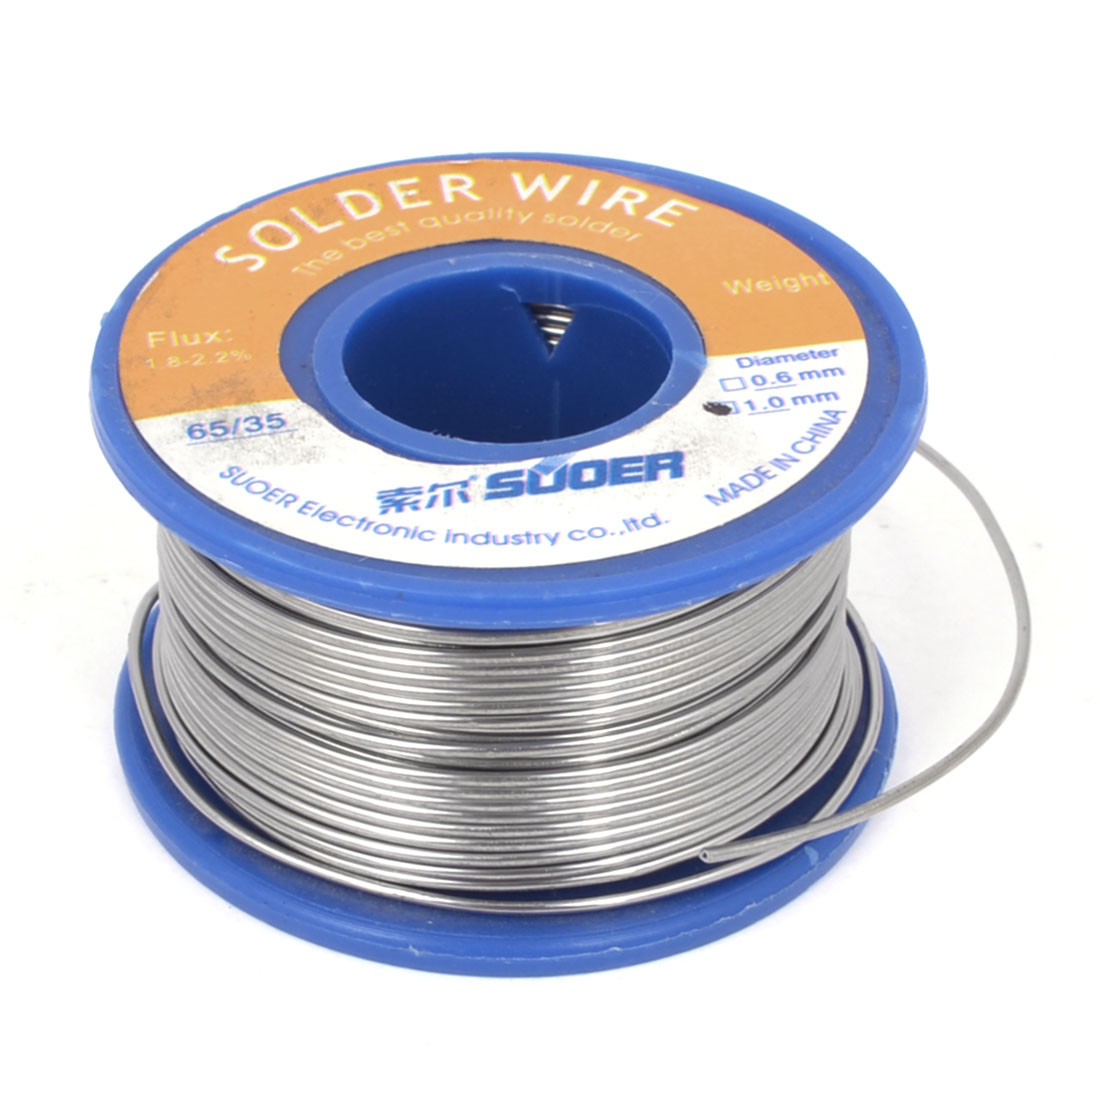 1mm 200g 65/35 Tin Lead Solder 1.8-2.2% Flux Wire Soldering Welding Reel Spool